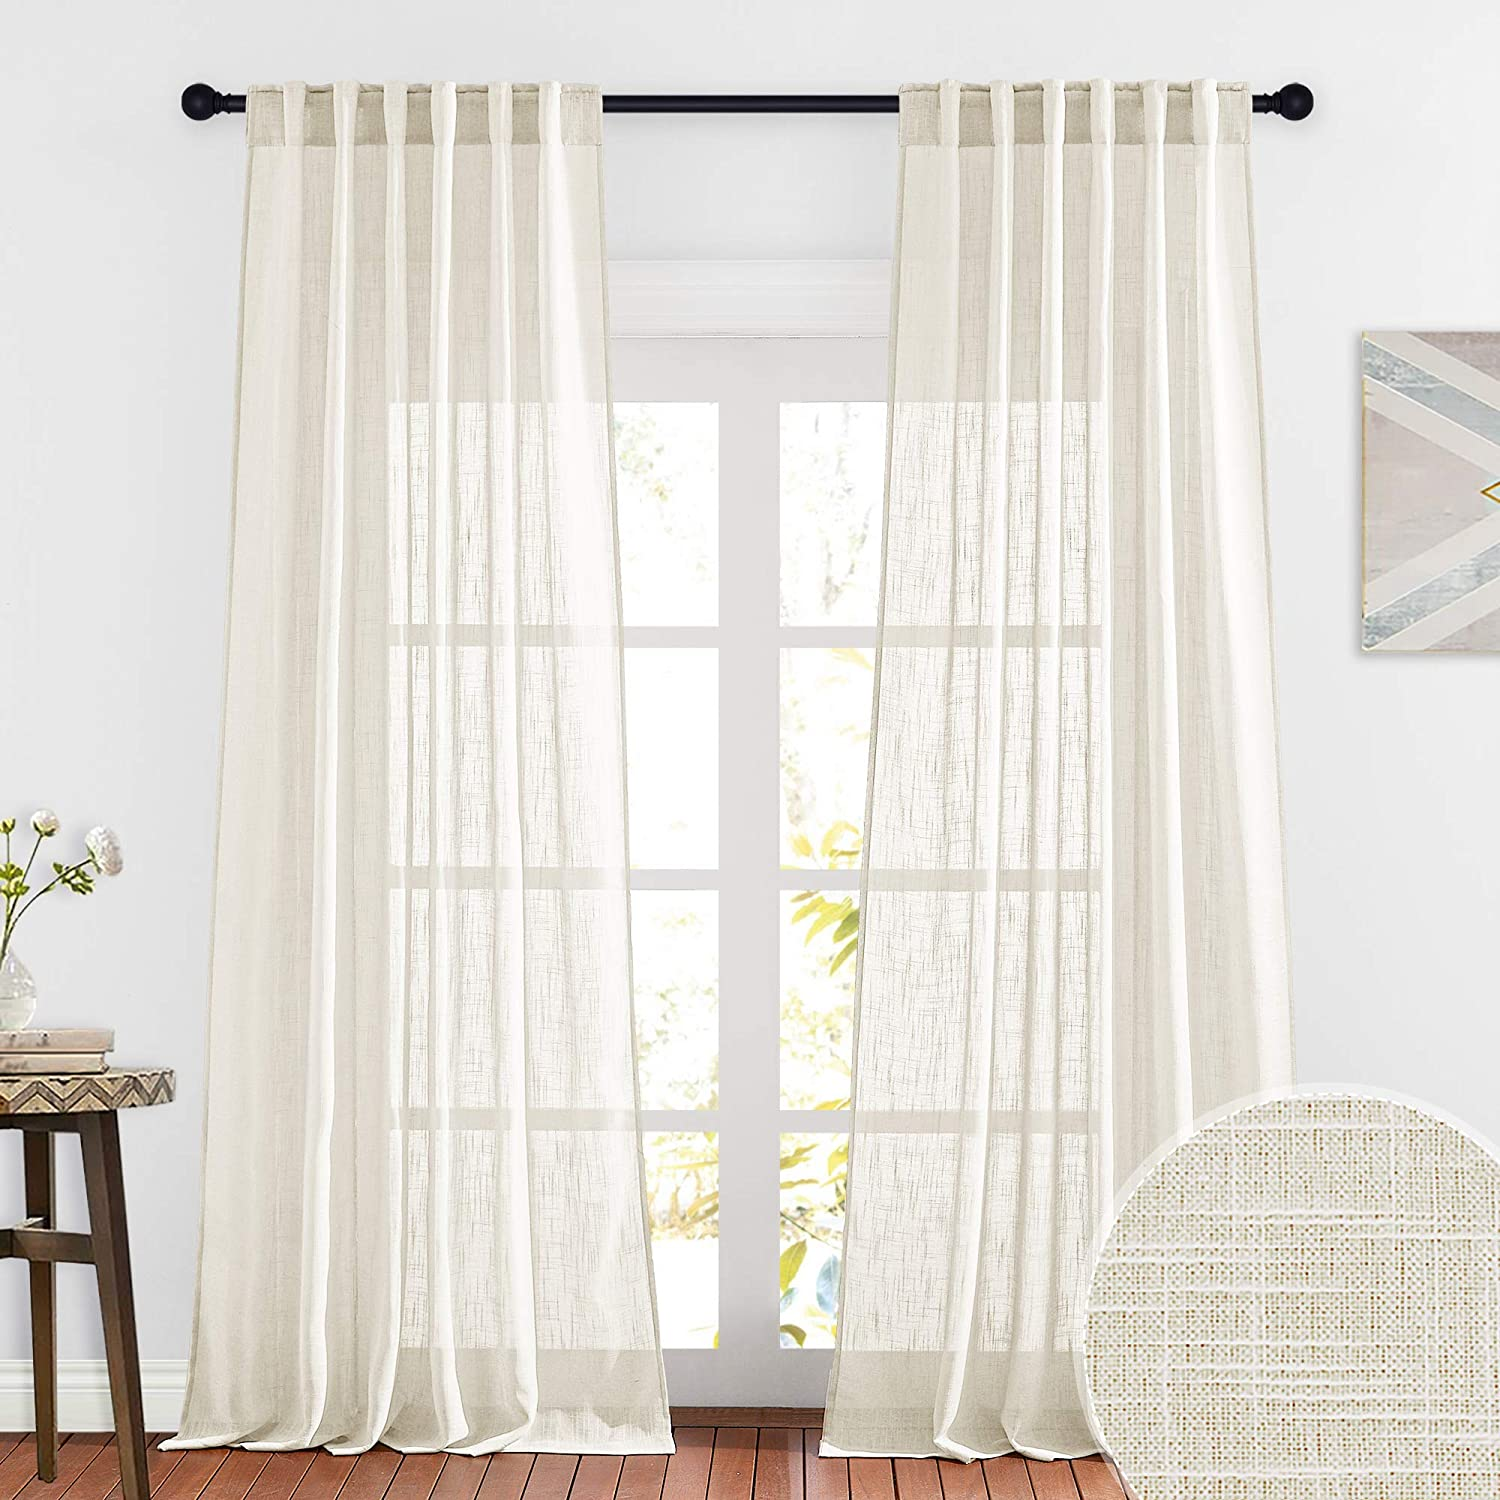 RYB HOME Semi Sheer Curtains, Linen Textured Privacy Light Filtering Panels for Bedroom Wall Backdrop for Weddings / Dining Area, Warm Beige, W 52 x L 95, Set of 2